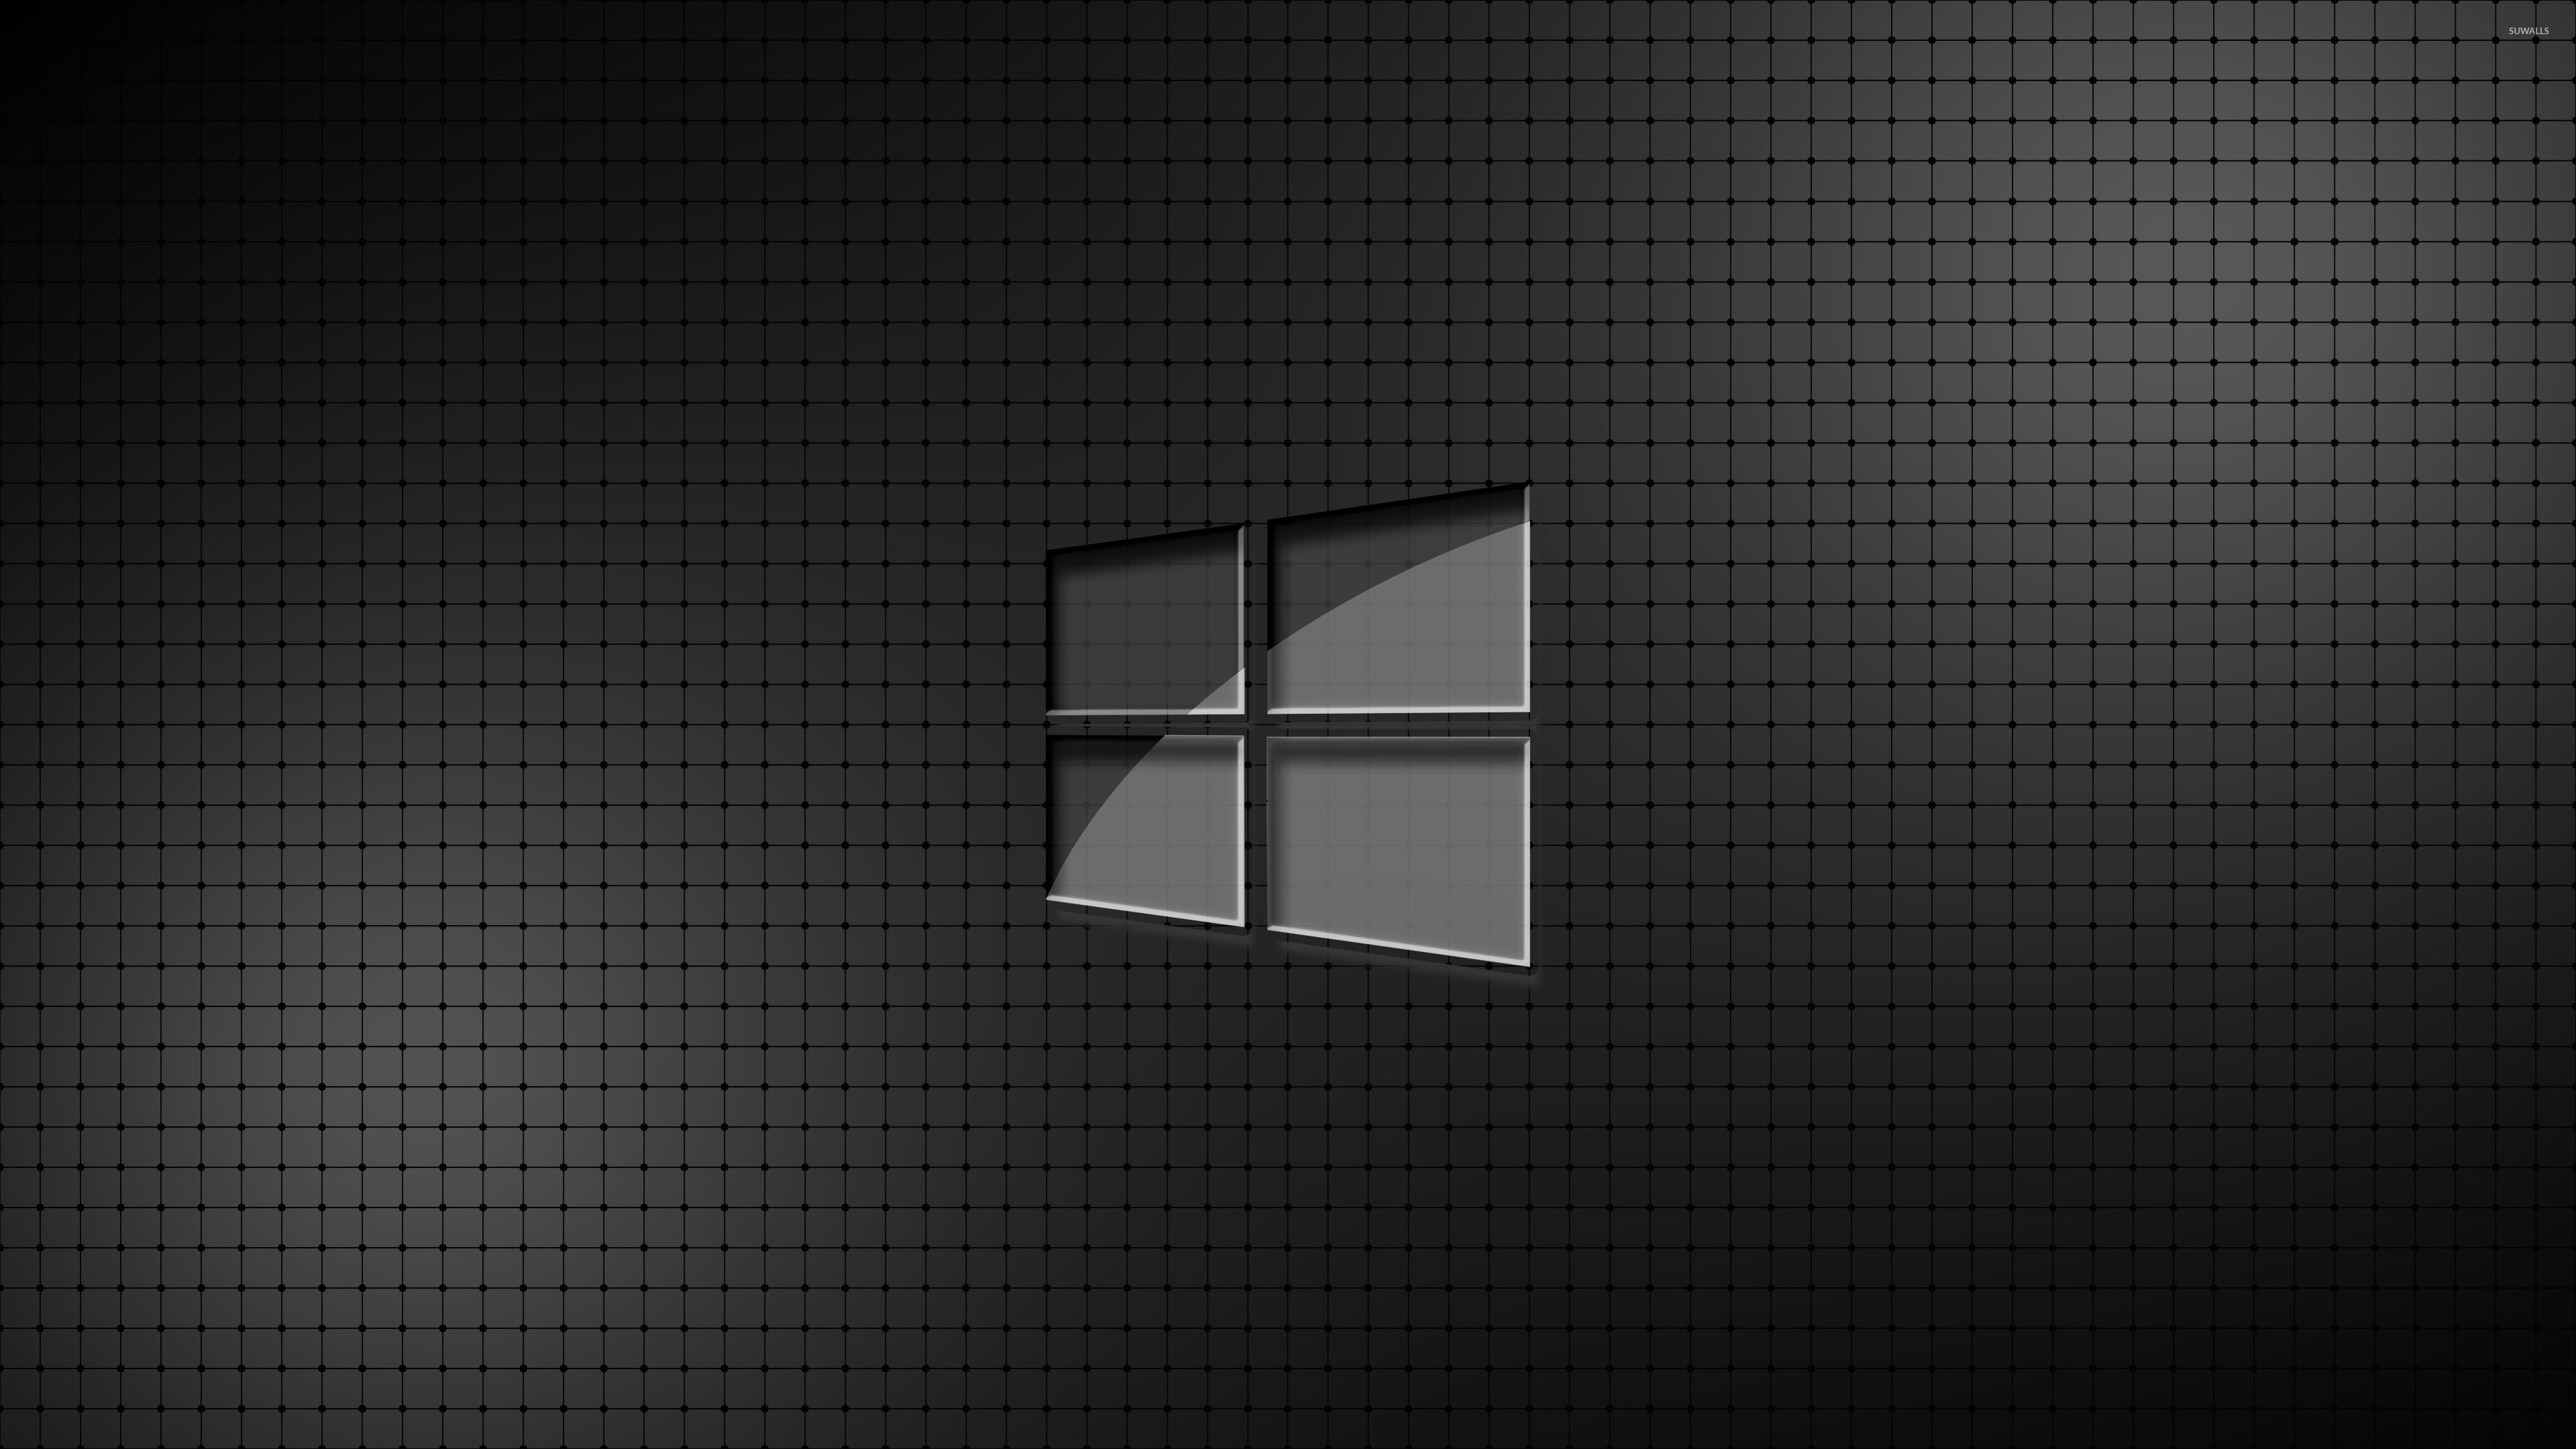 Res: 3840x2160, Glass Windows 10 on a grid wallpaper